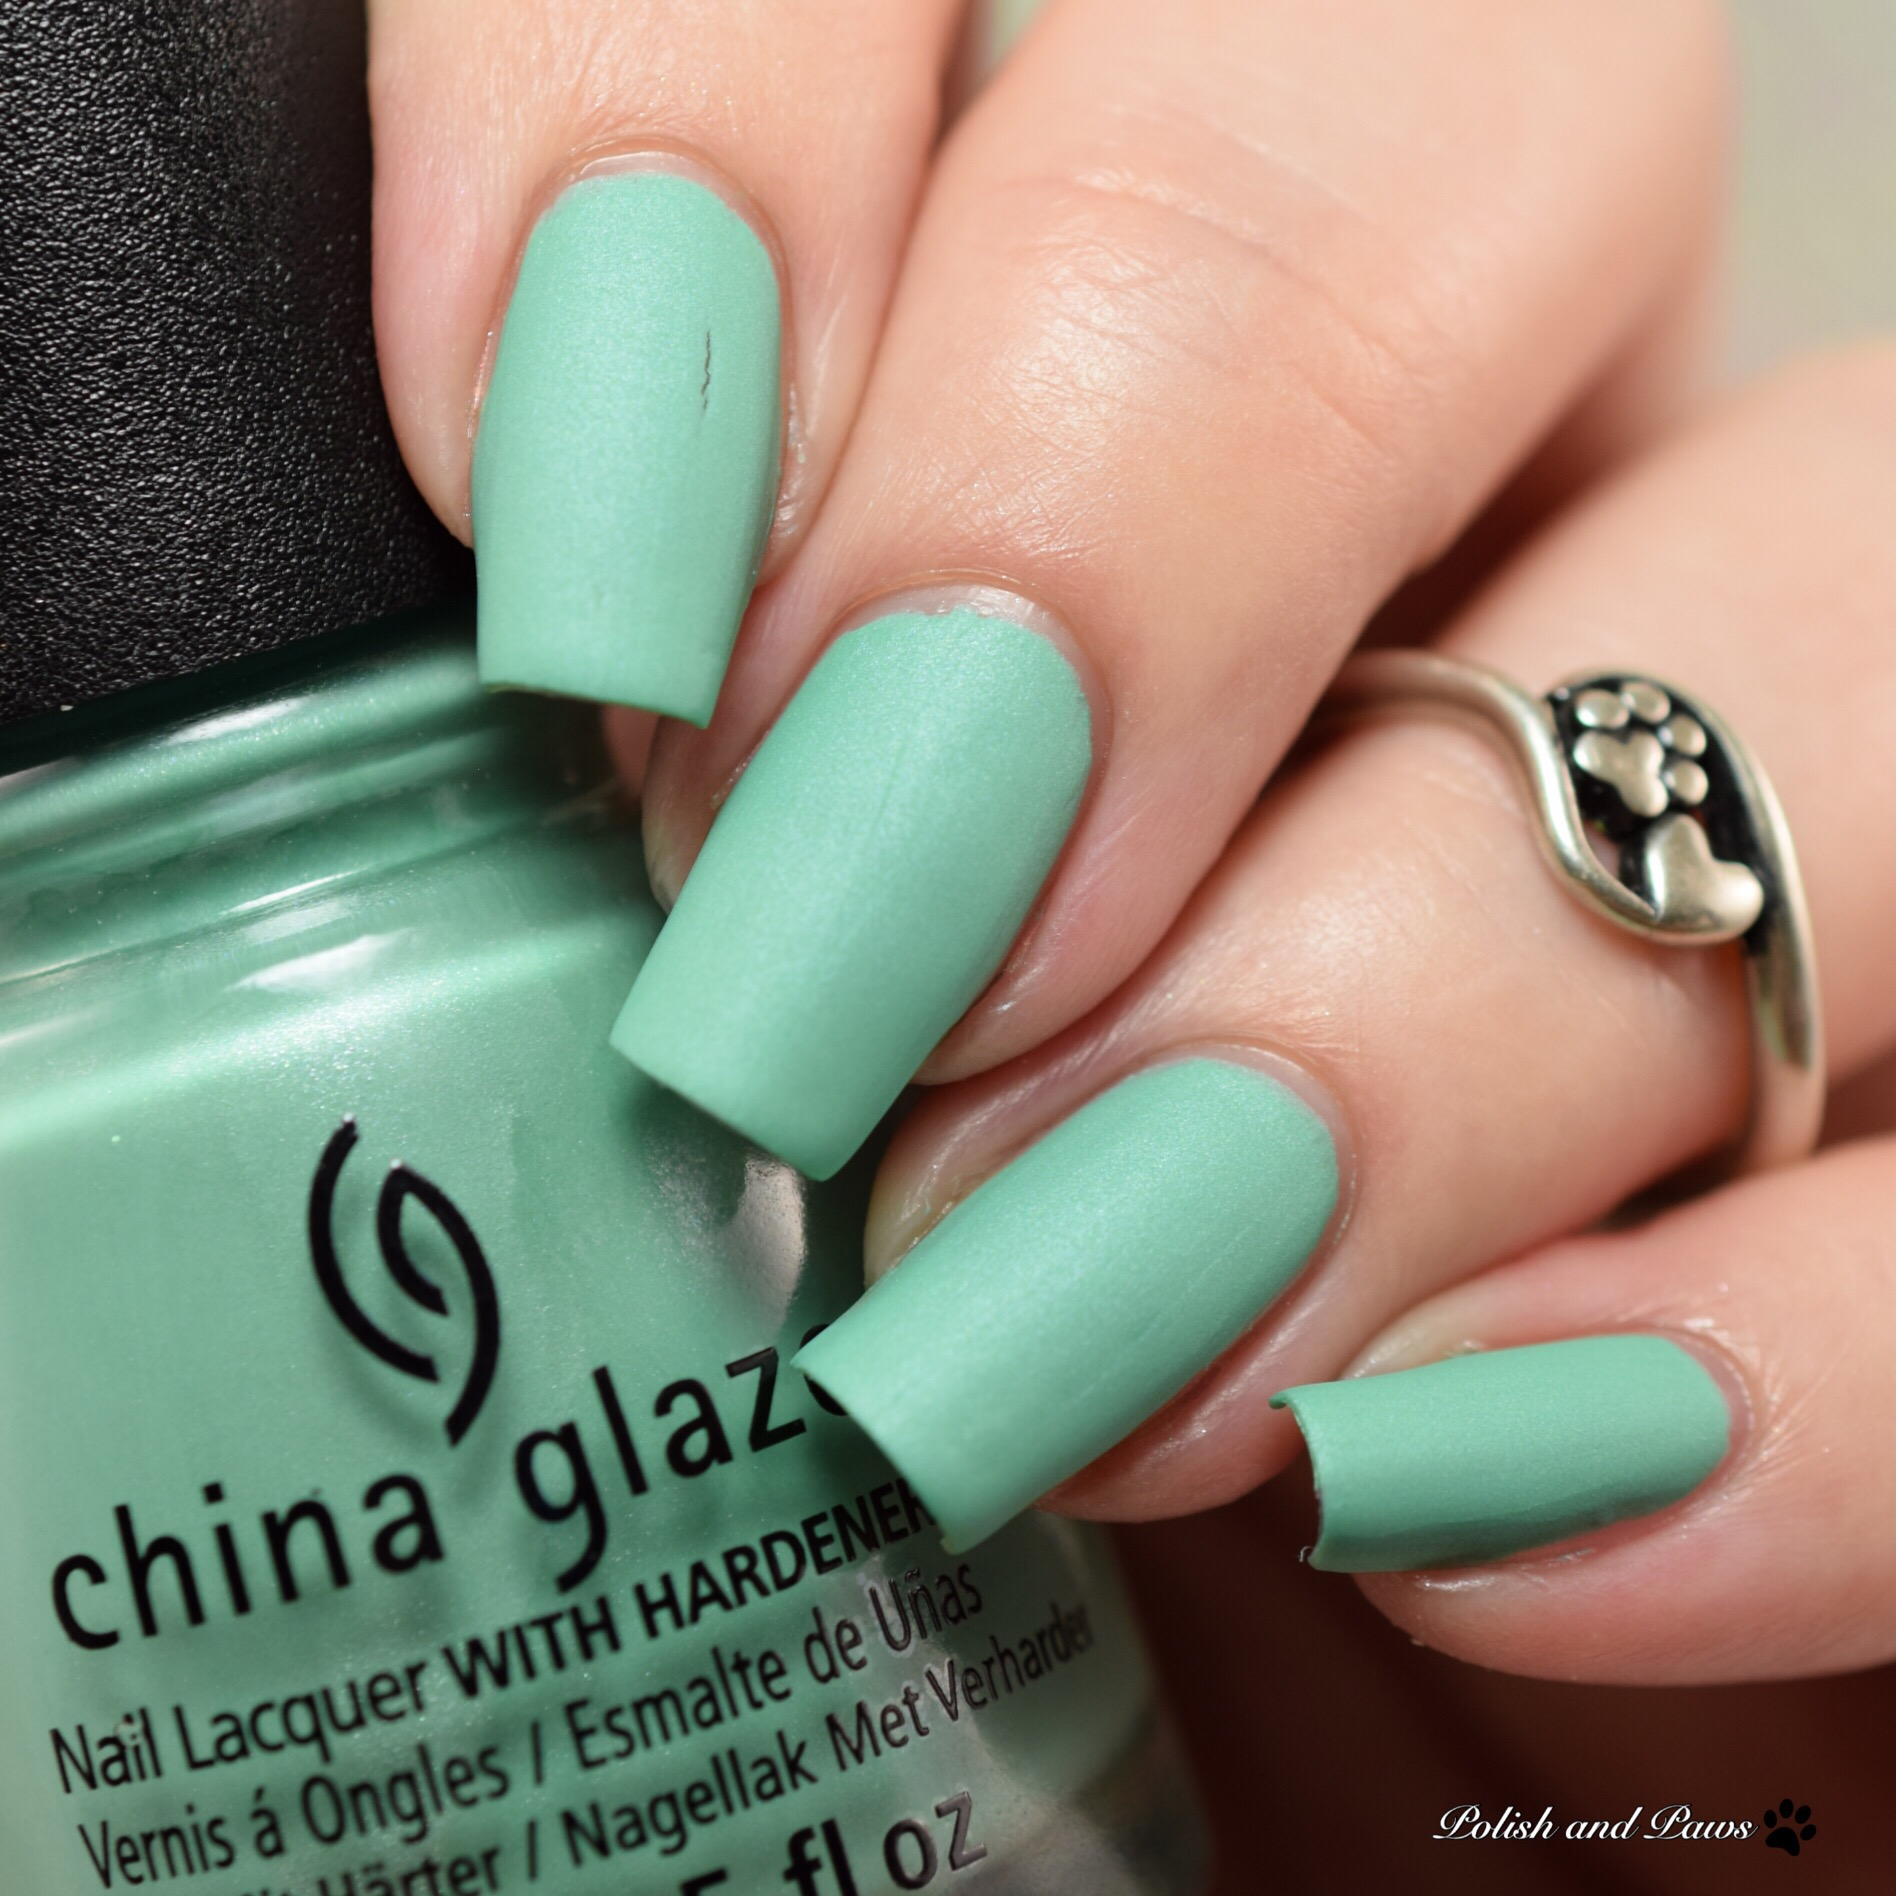 China glaze seas and greetings collection holiday 2016 polish china glaze partridge in a palm tree nvjuhfo Gallery